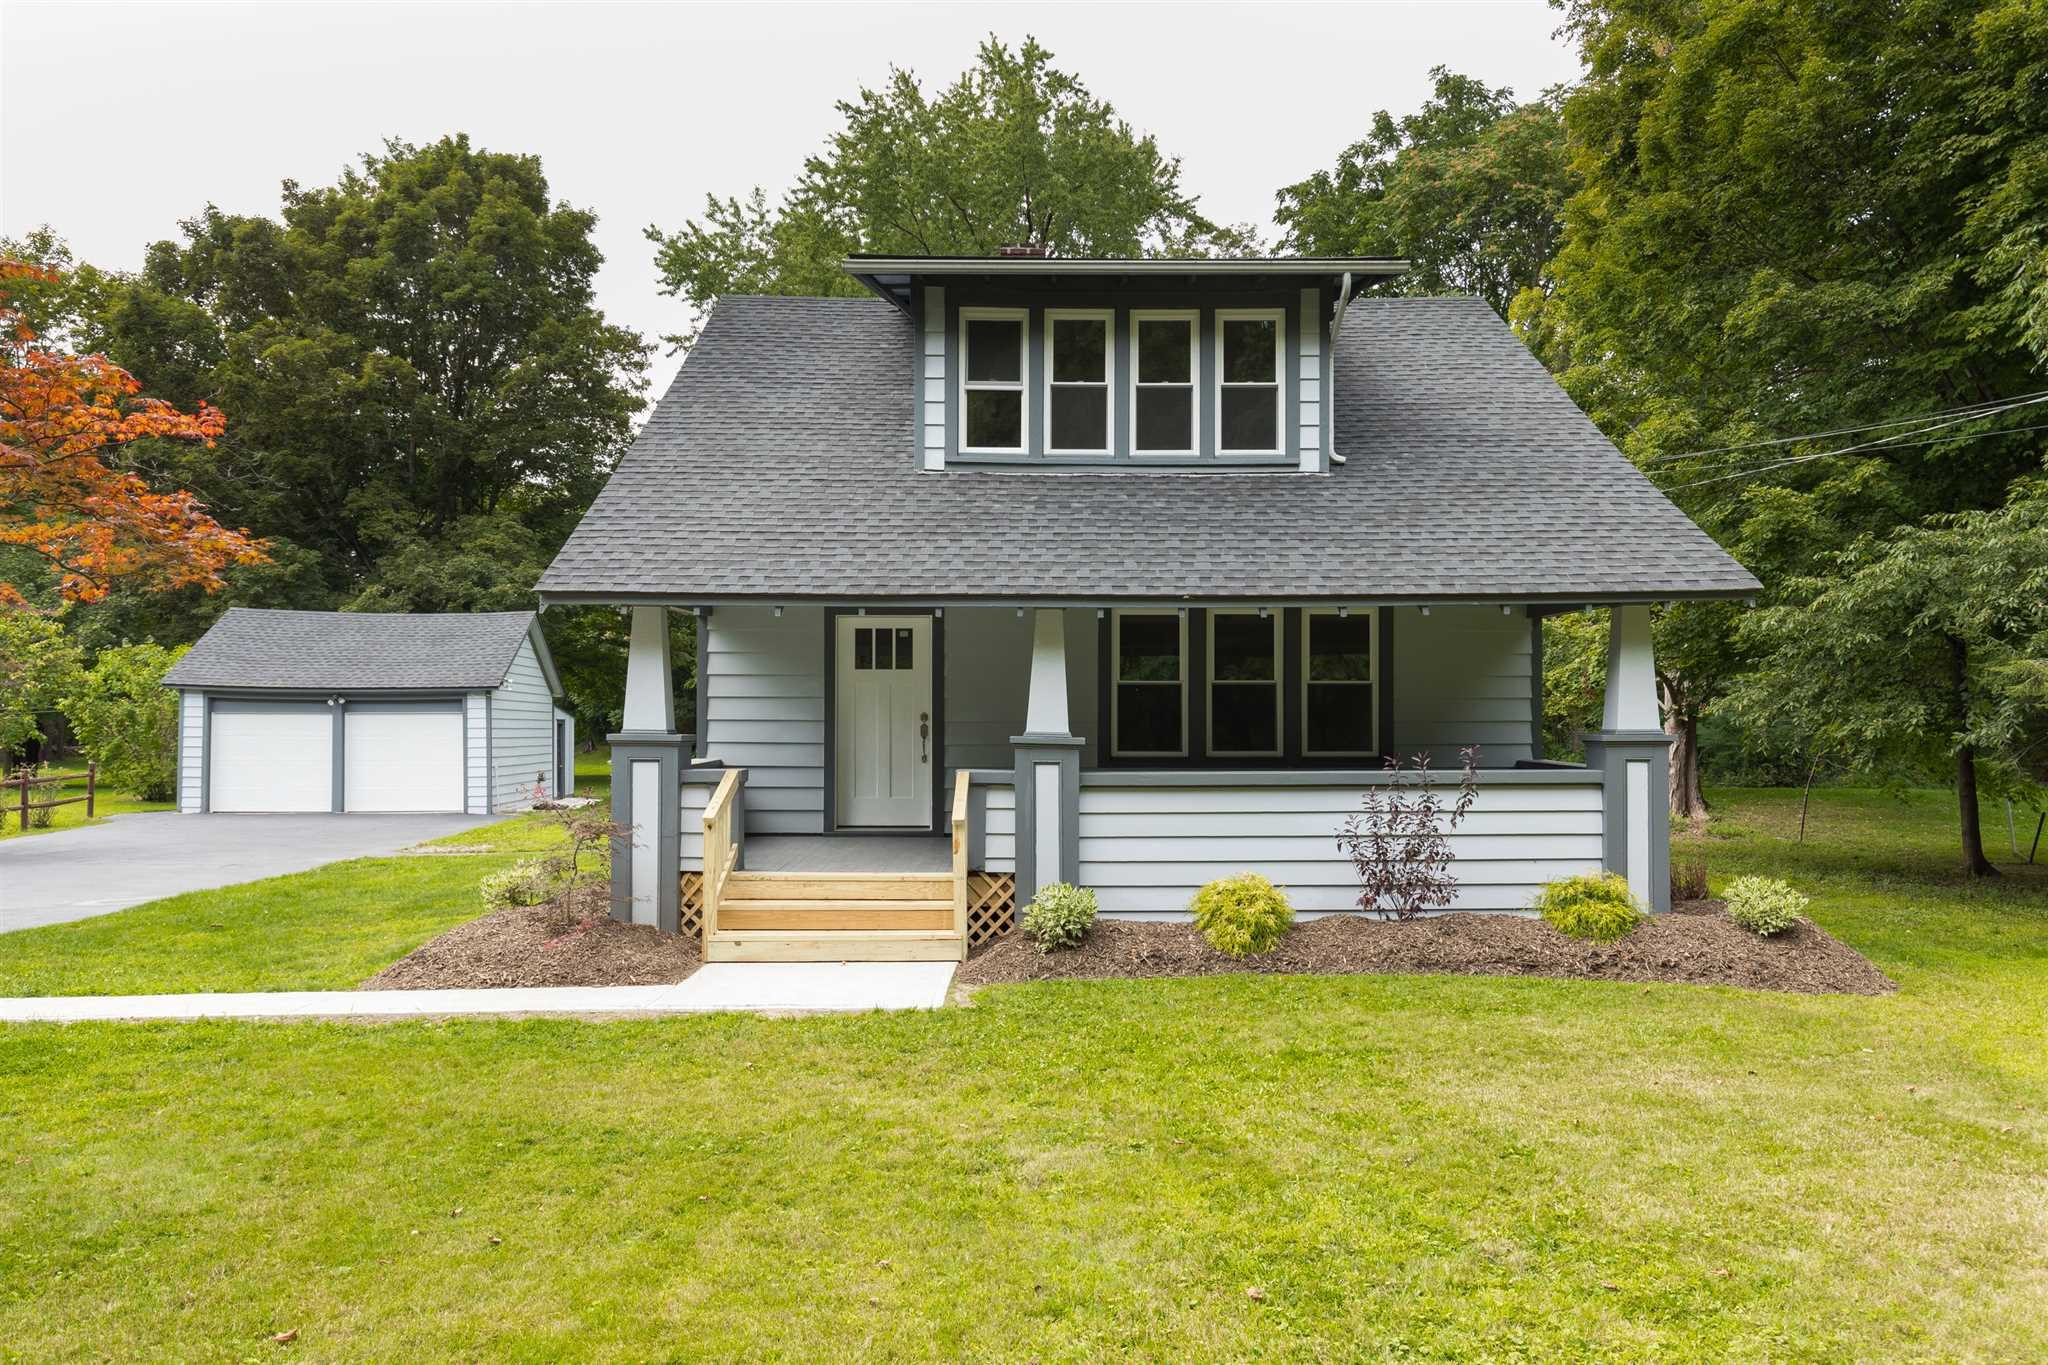 Single Family Home for Sale at 79 NORTH Avenue 79 NORTH Avenue Pleasant Valley, New York 12569 United States